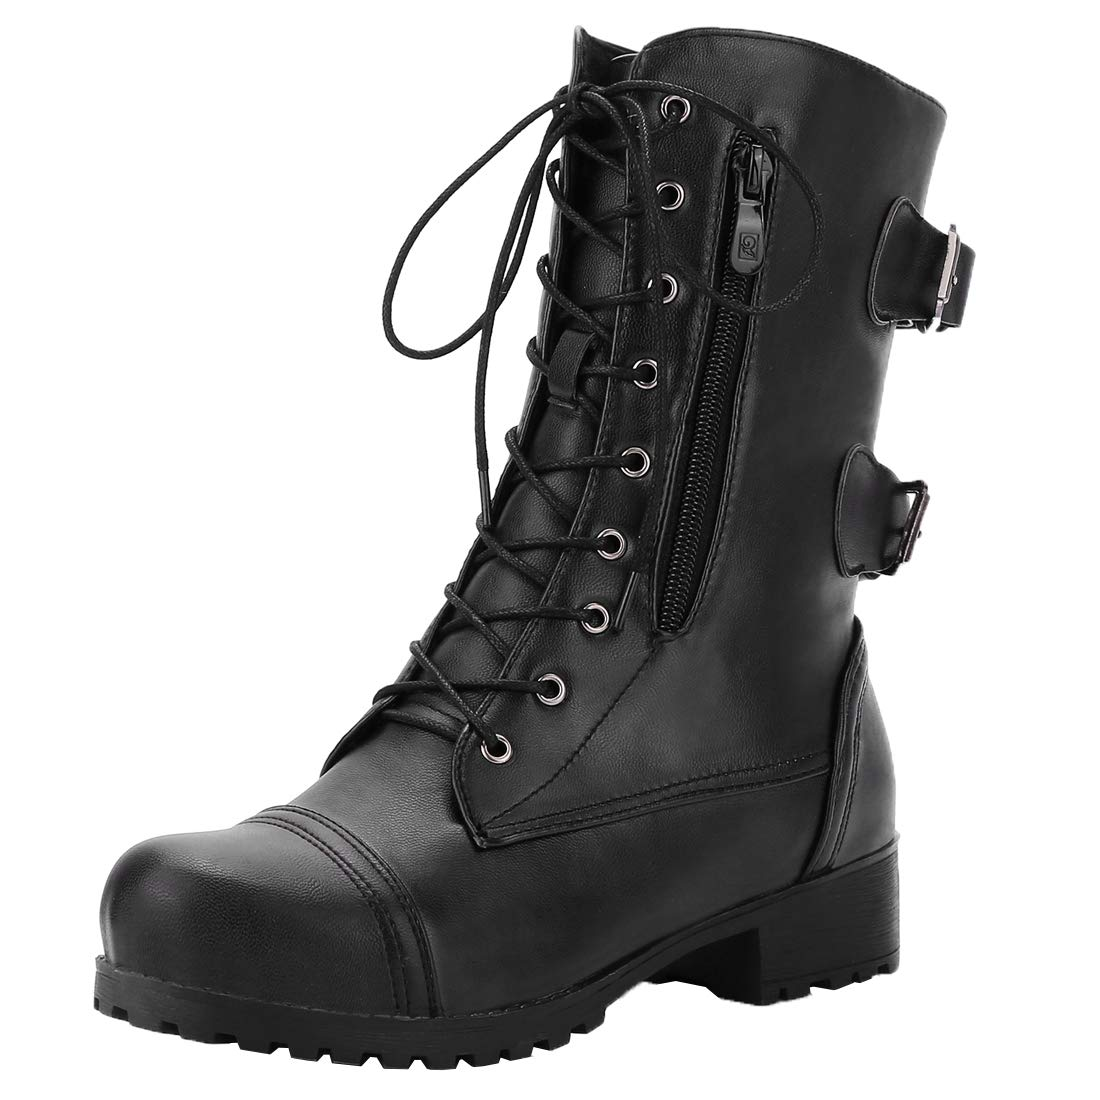 Vitalo Womens Lace Up Mid Calf Military Buckle Combat Biker Boots Credit Card Boots Size 10 B(M) US,Black by Vitalo